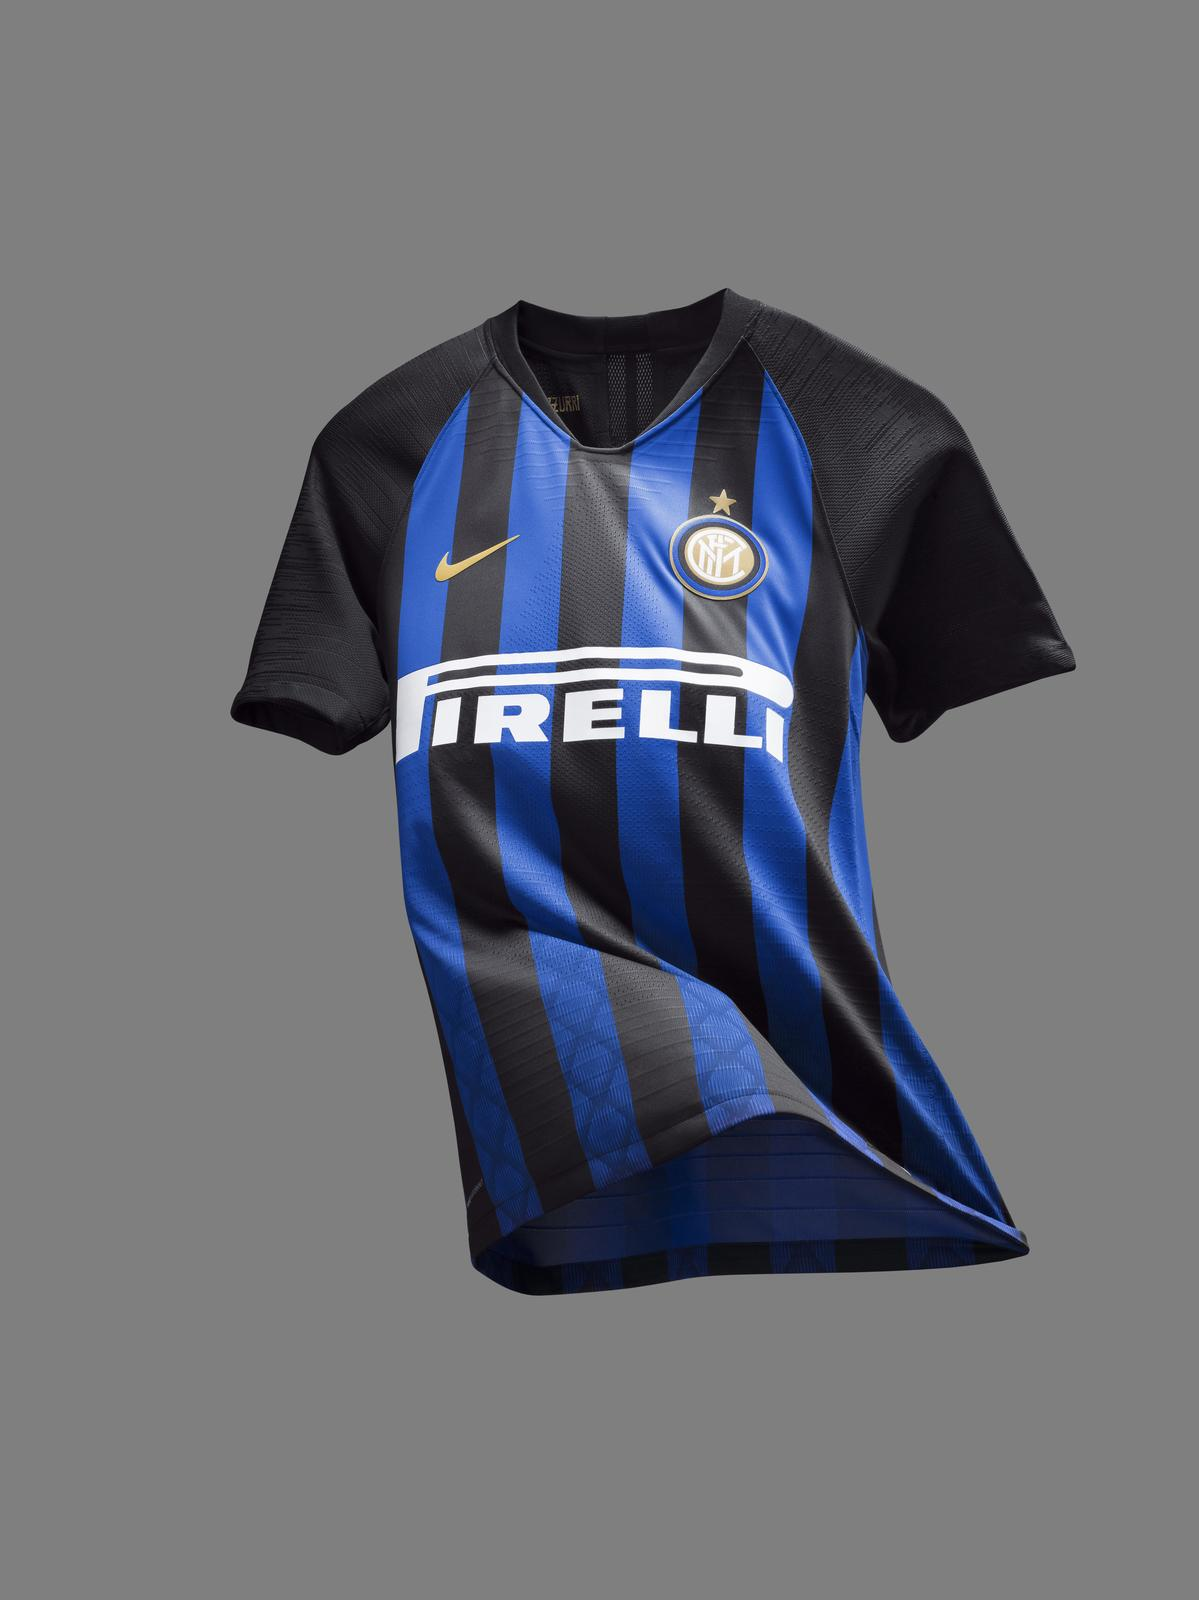 Inter Milan and Nike Celebrate 20 Years of Partnership 0. The 2018-19 ... 8a00ccb7f